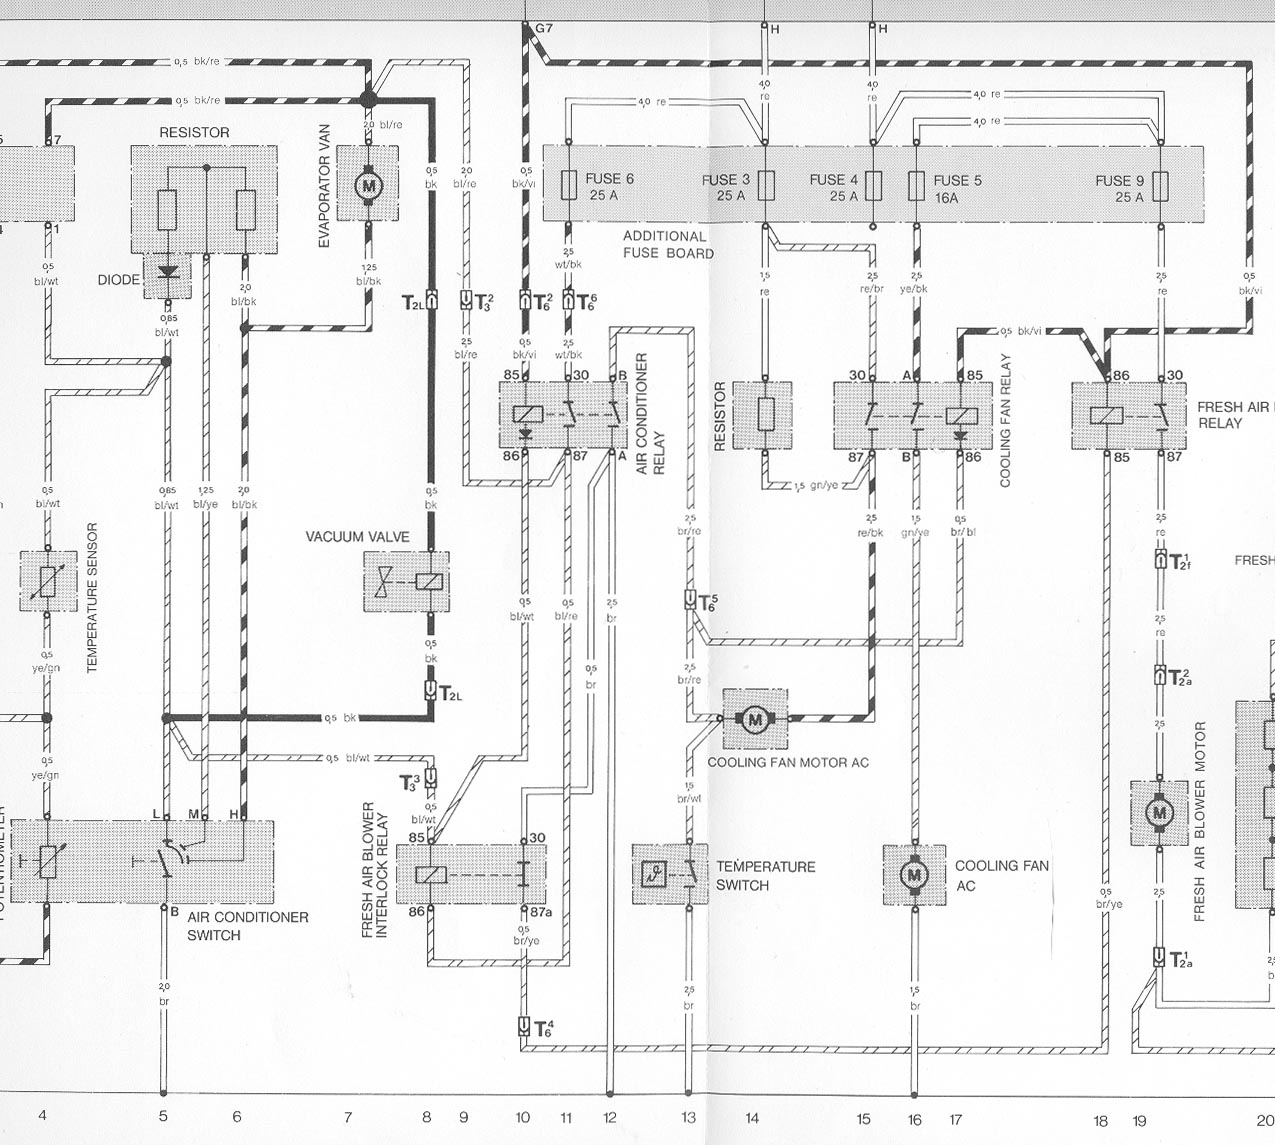 Vy Commodore Wiring Diagram 27 Images Vr Stereo Colours Early Cooling Fan With Ac Ve Download And At Cita